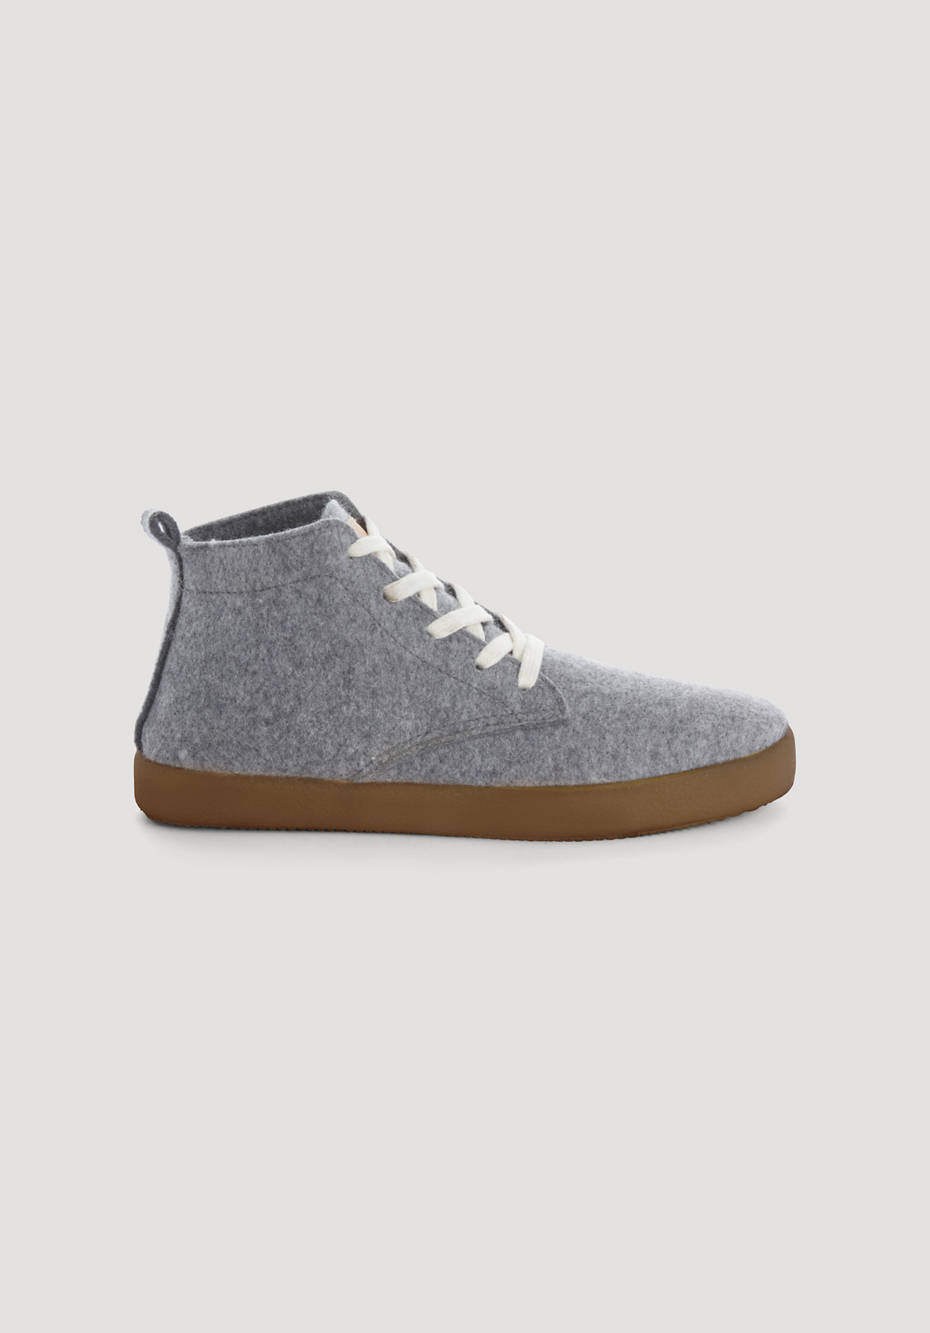 Betterecycling sneakers made from organic new wool